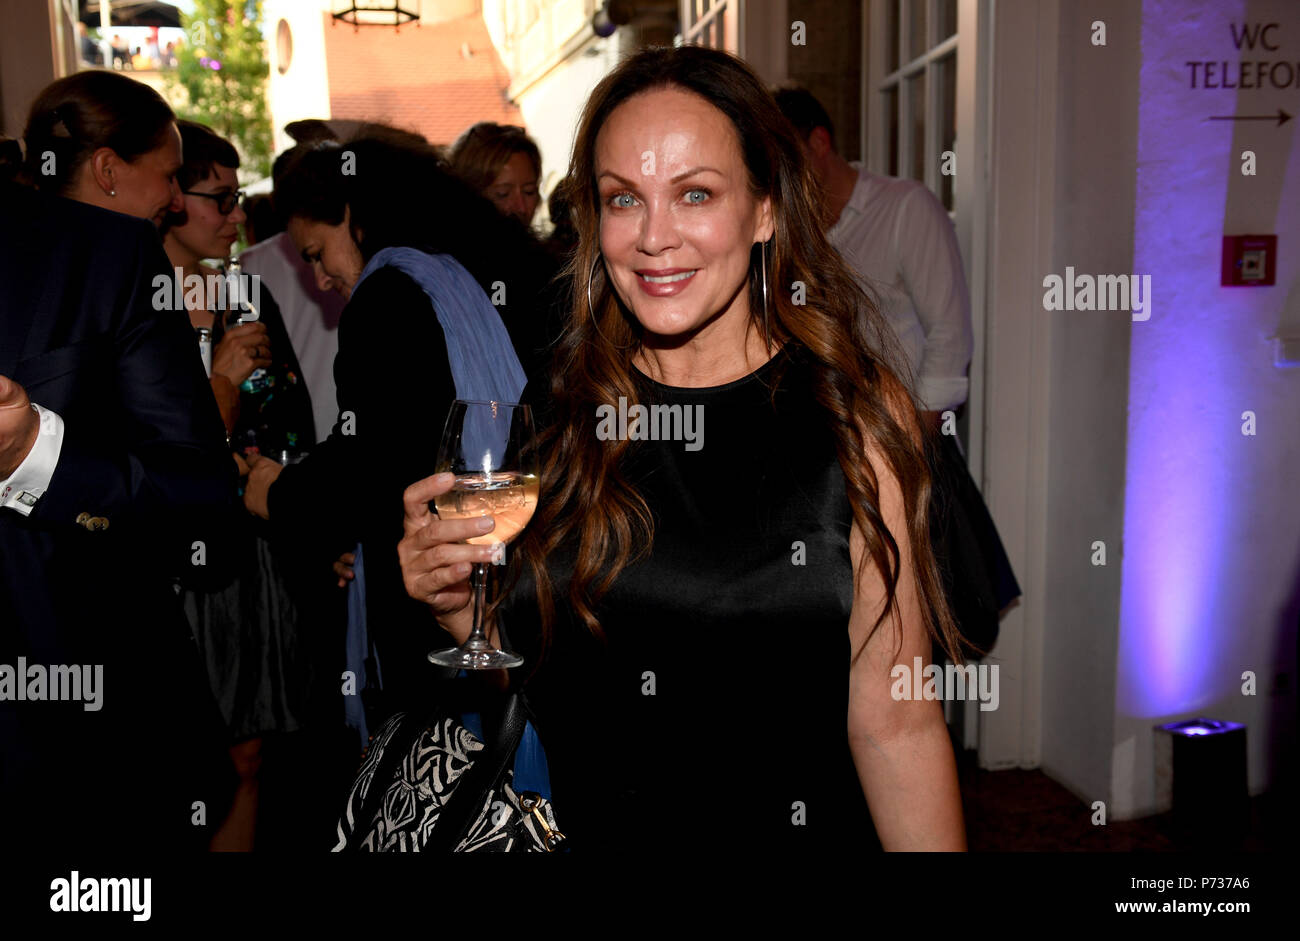 03 July 2018, Germany, Munich: Actress Sonja Kirchberger attends the Bavaria Film reception at the Kuenstlerhaus, an event hosted on occasion of the Film Festival Munich. Photo: Felix Hörhager/dpa - Stock Image